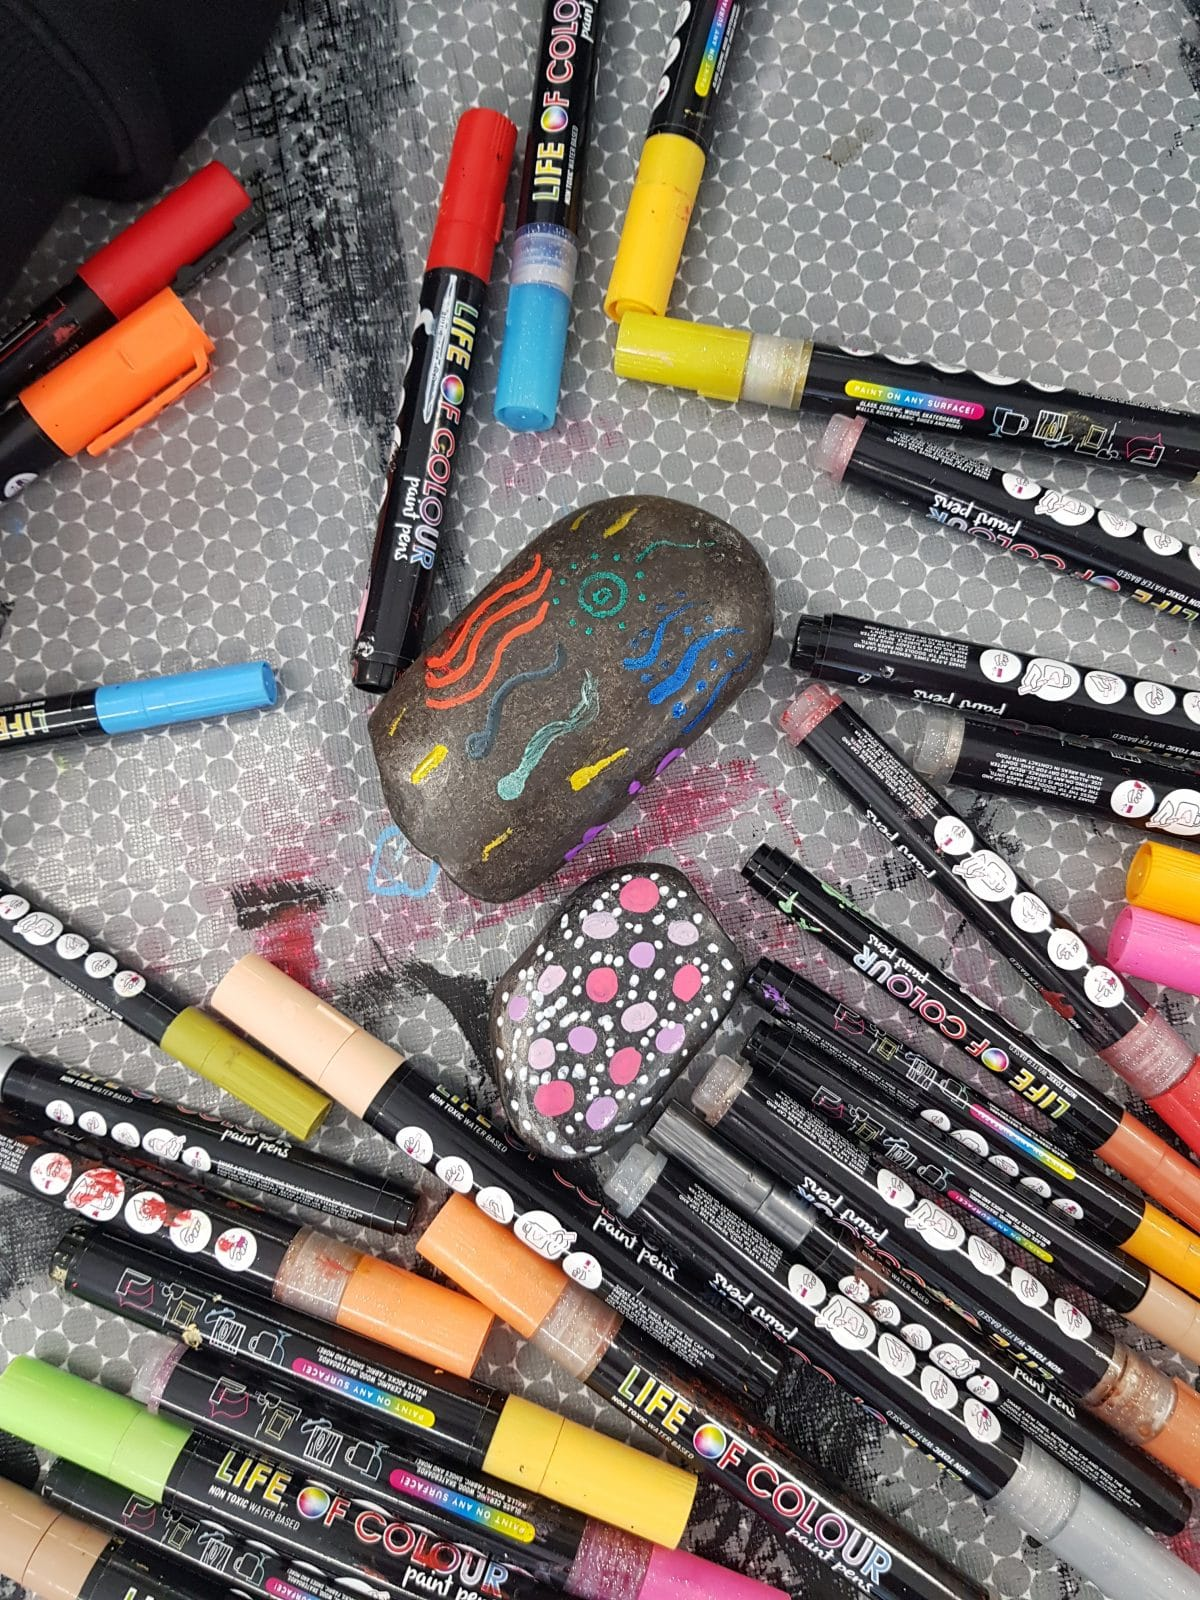 Paint pens and Rocks